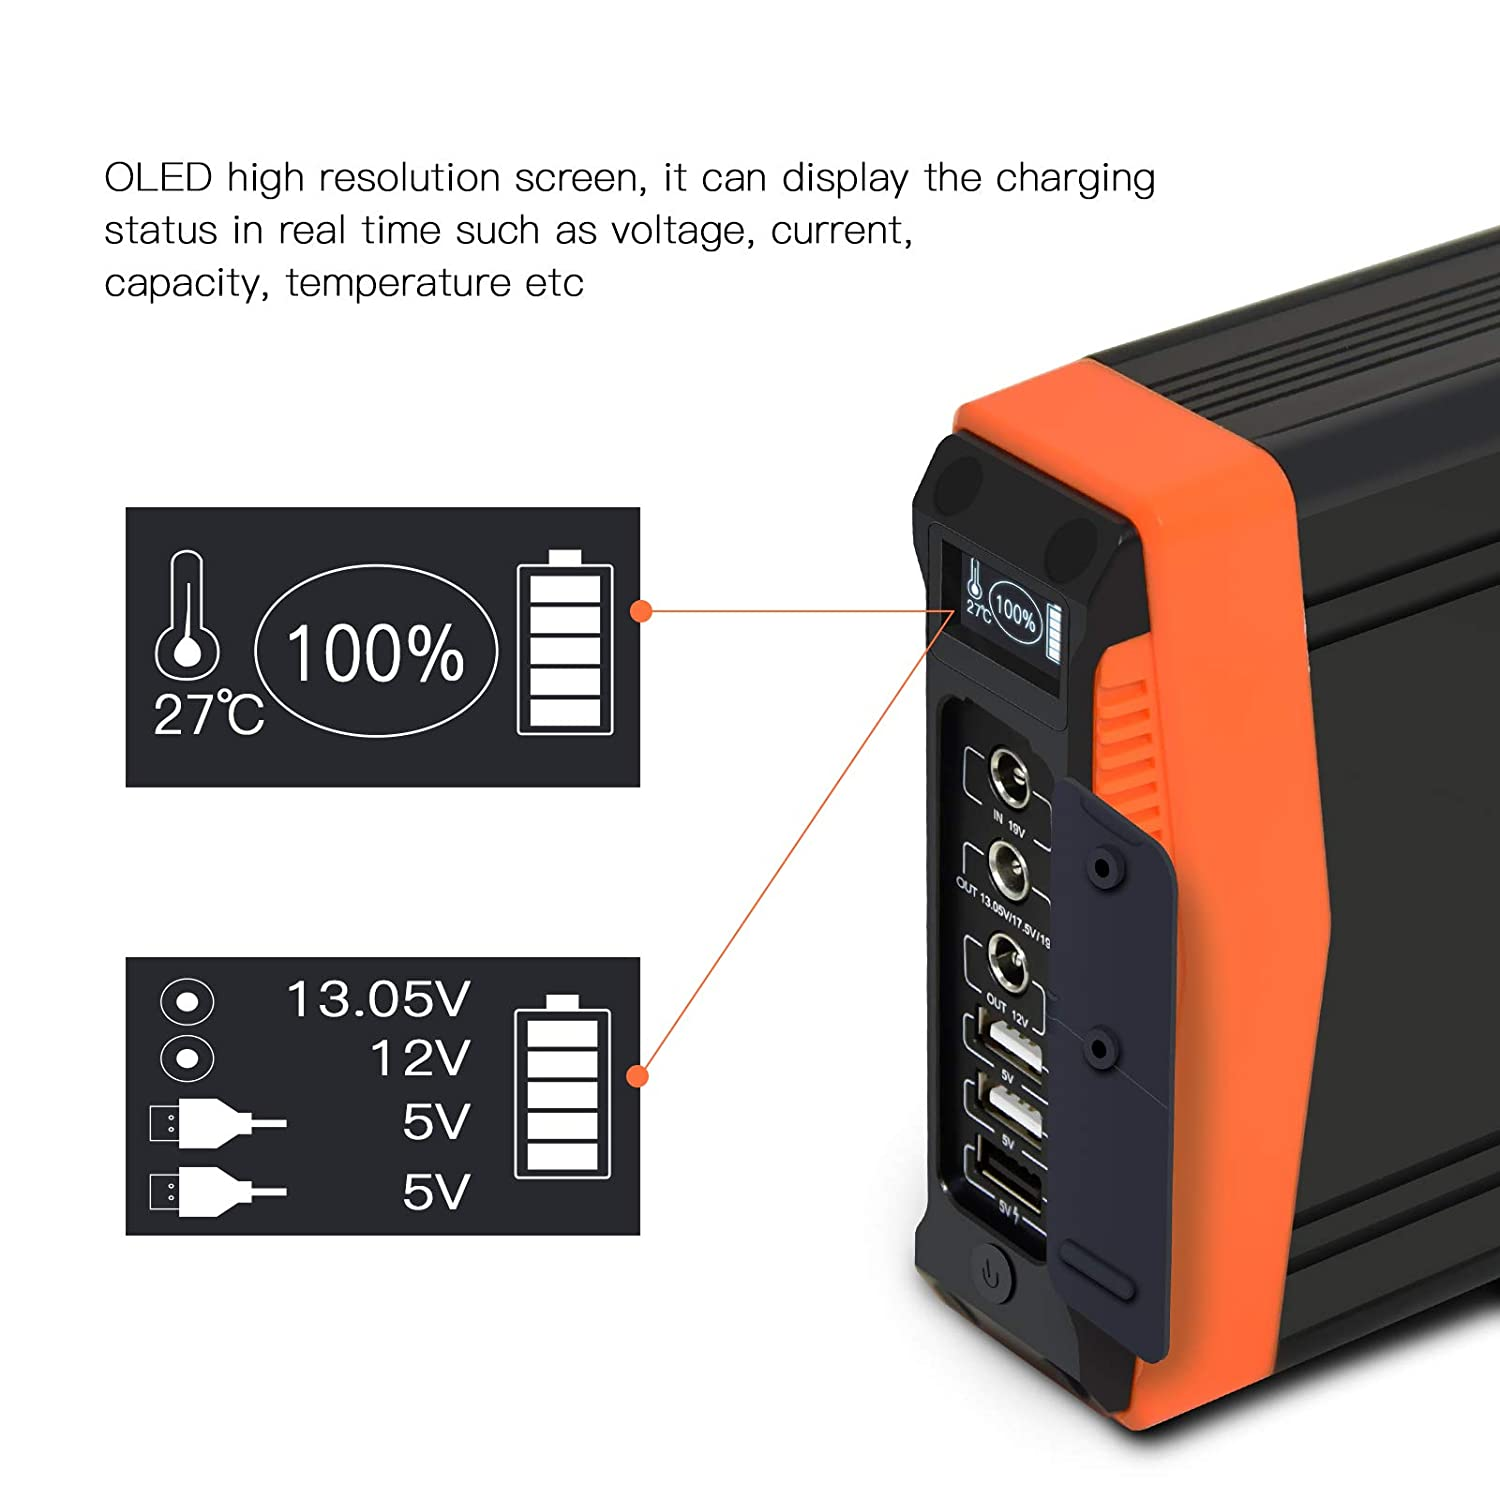 200W Generator Portable Power Station, SUNGZU Outdoor Mobile Power 52000mAh External Battery Pack Compatible with Mobile Phones, Video Cameras, Wizard 3 4 Drones, Home Camping Emergency Battery